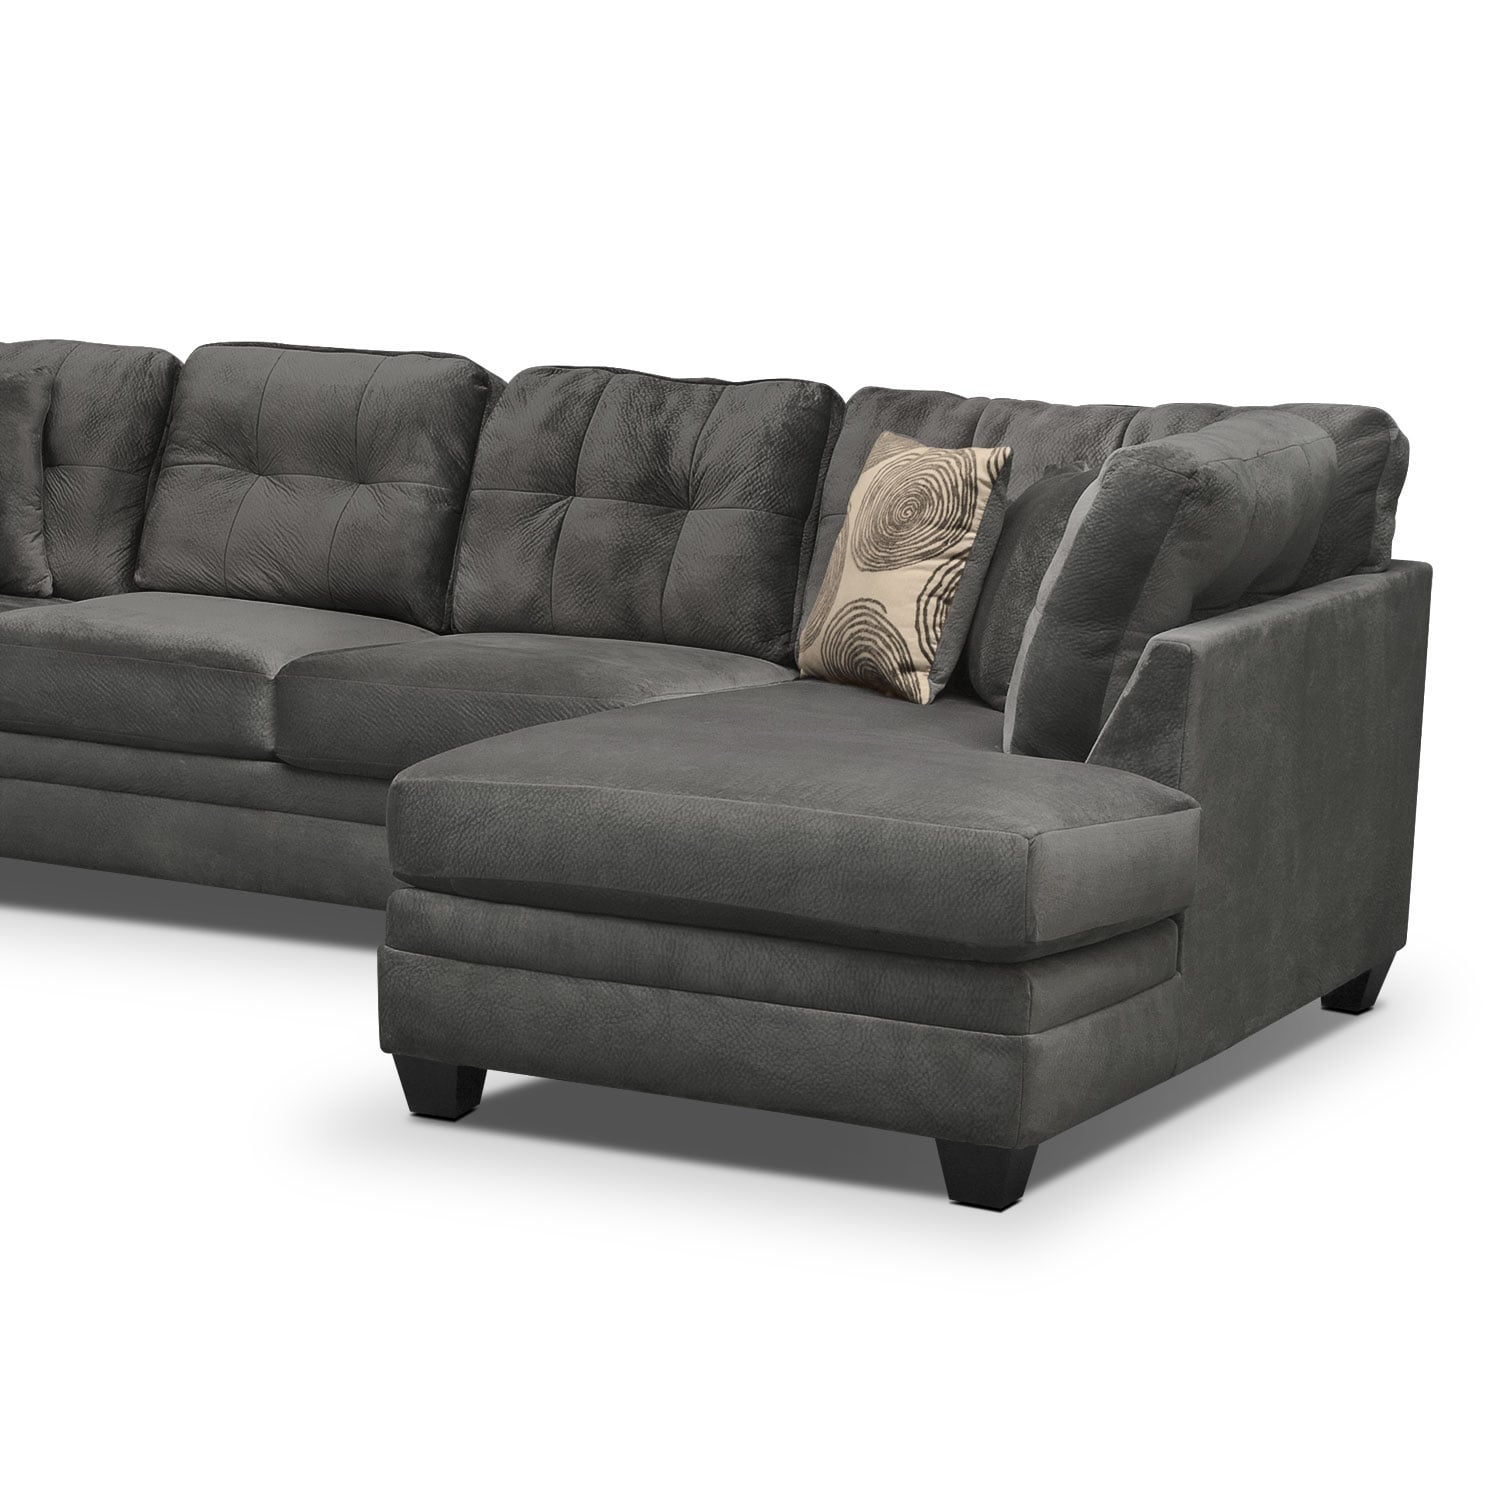 Cordelle 3-Piece Sectional - Gray | Value City Furniture